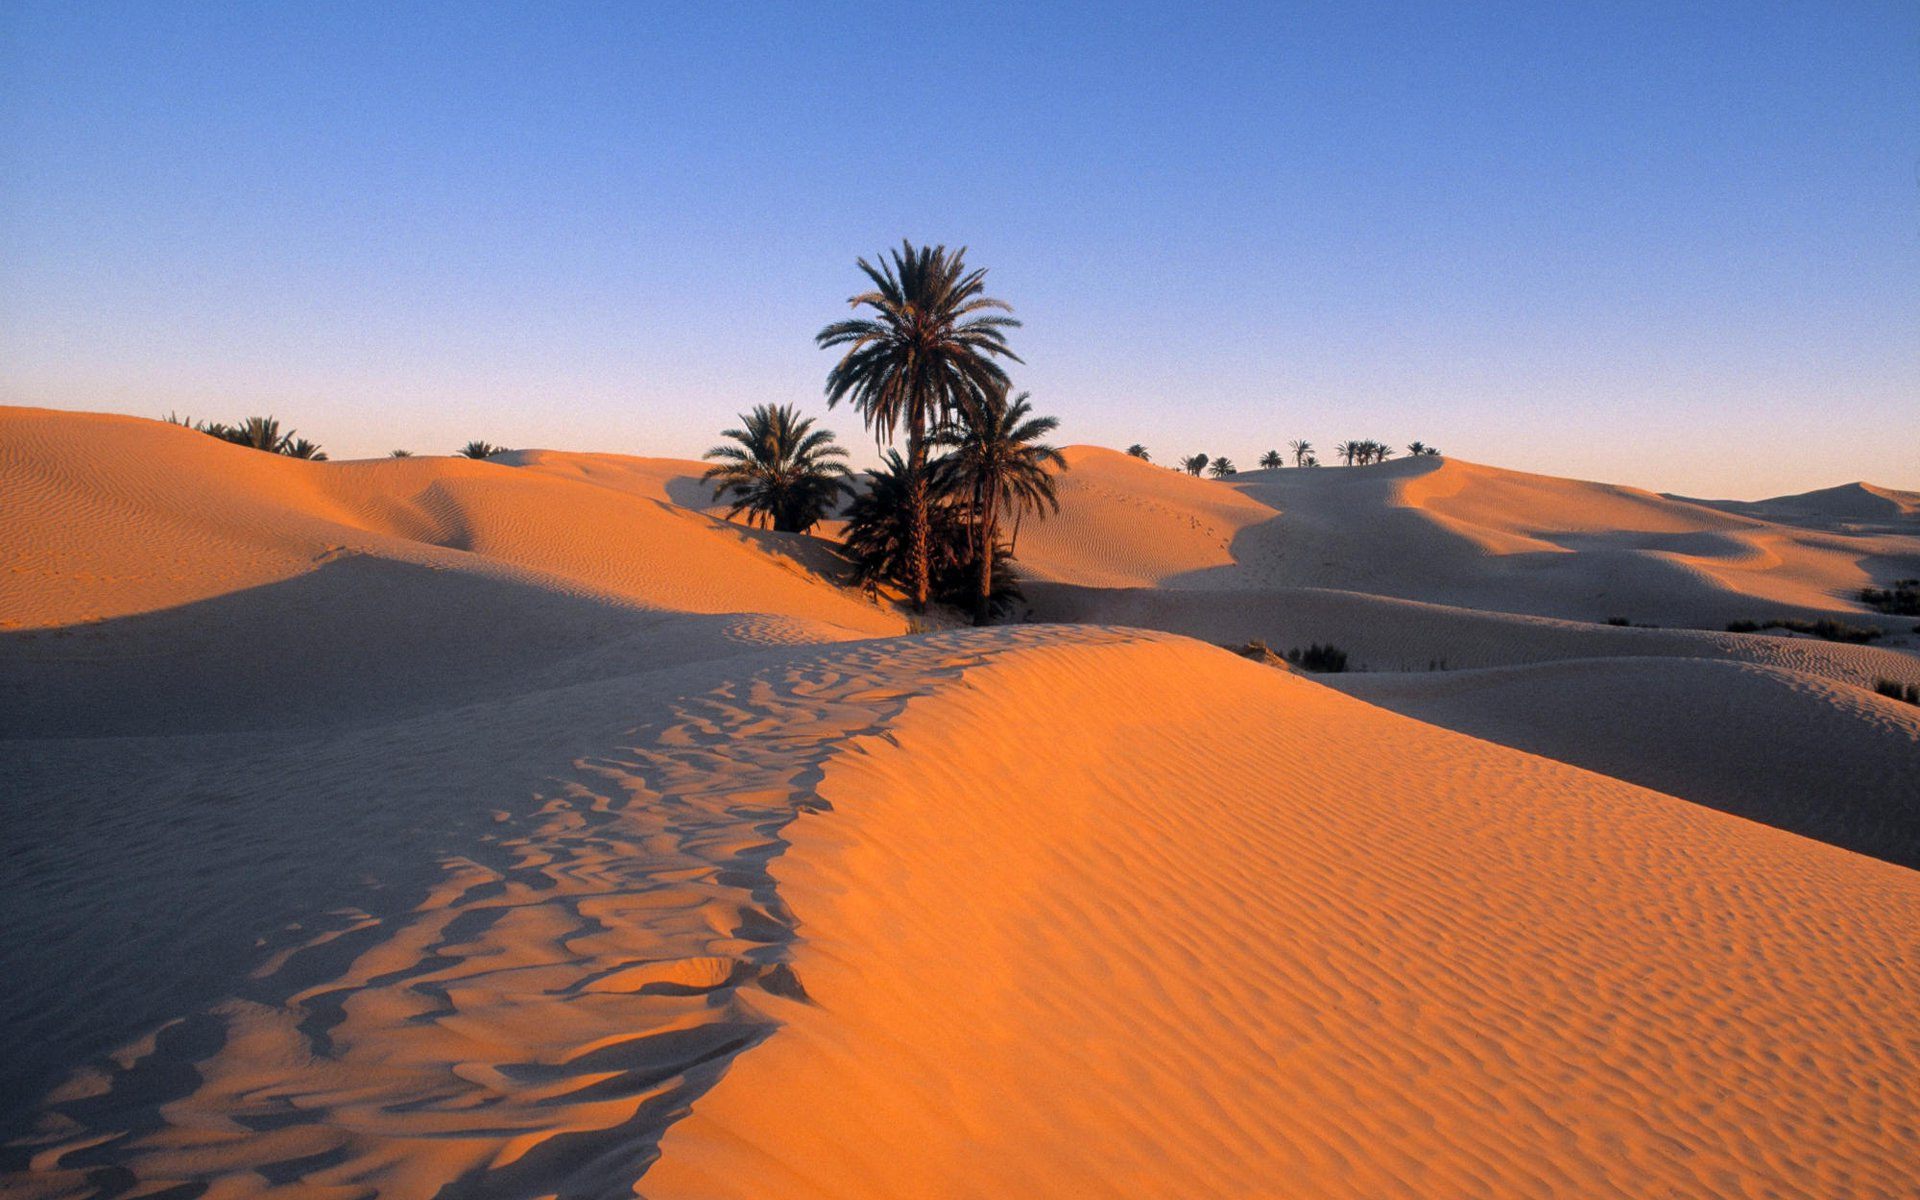 A view of the desert in Tunisia's southern city of Douz. (Ministry of Tourism)